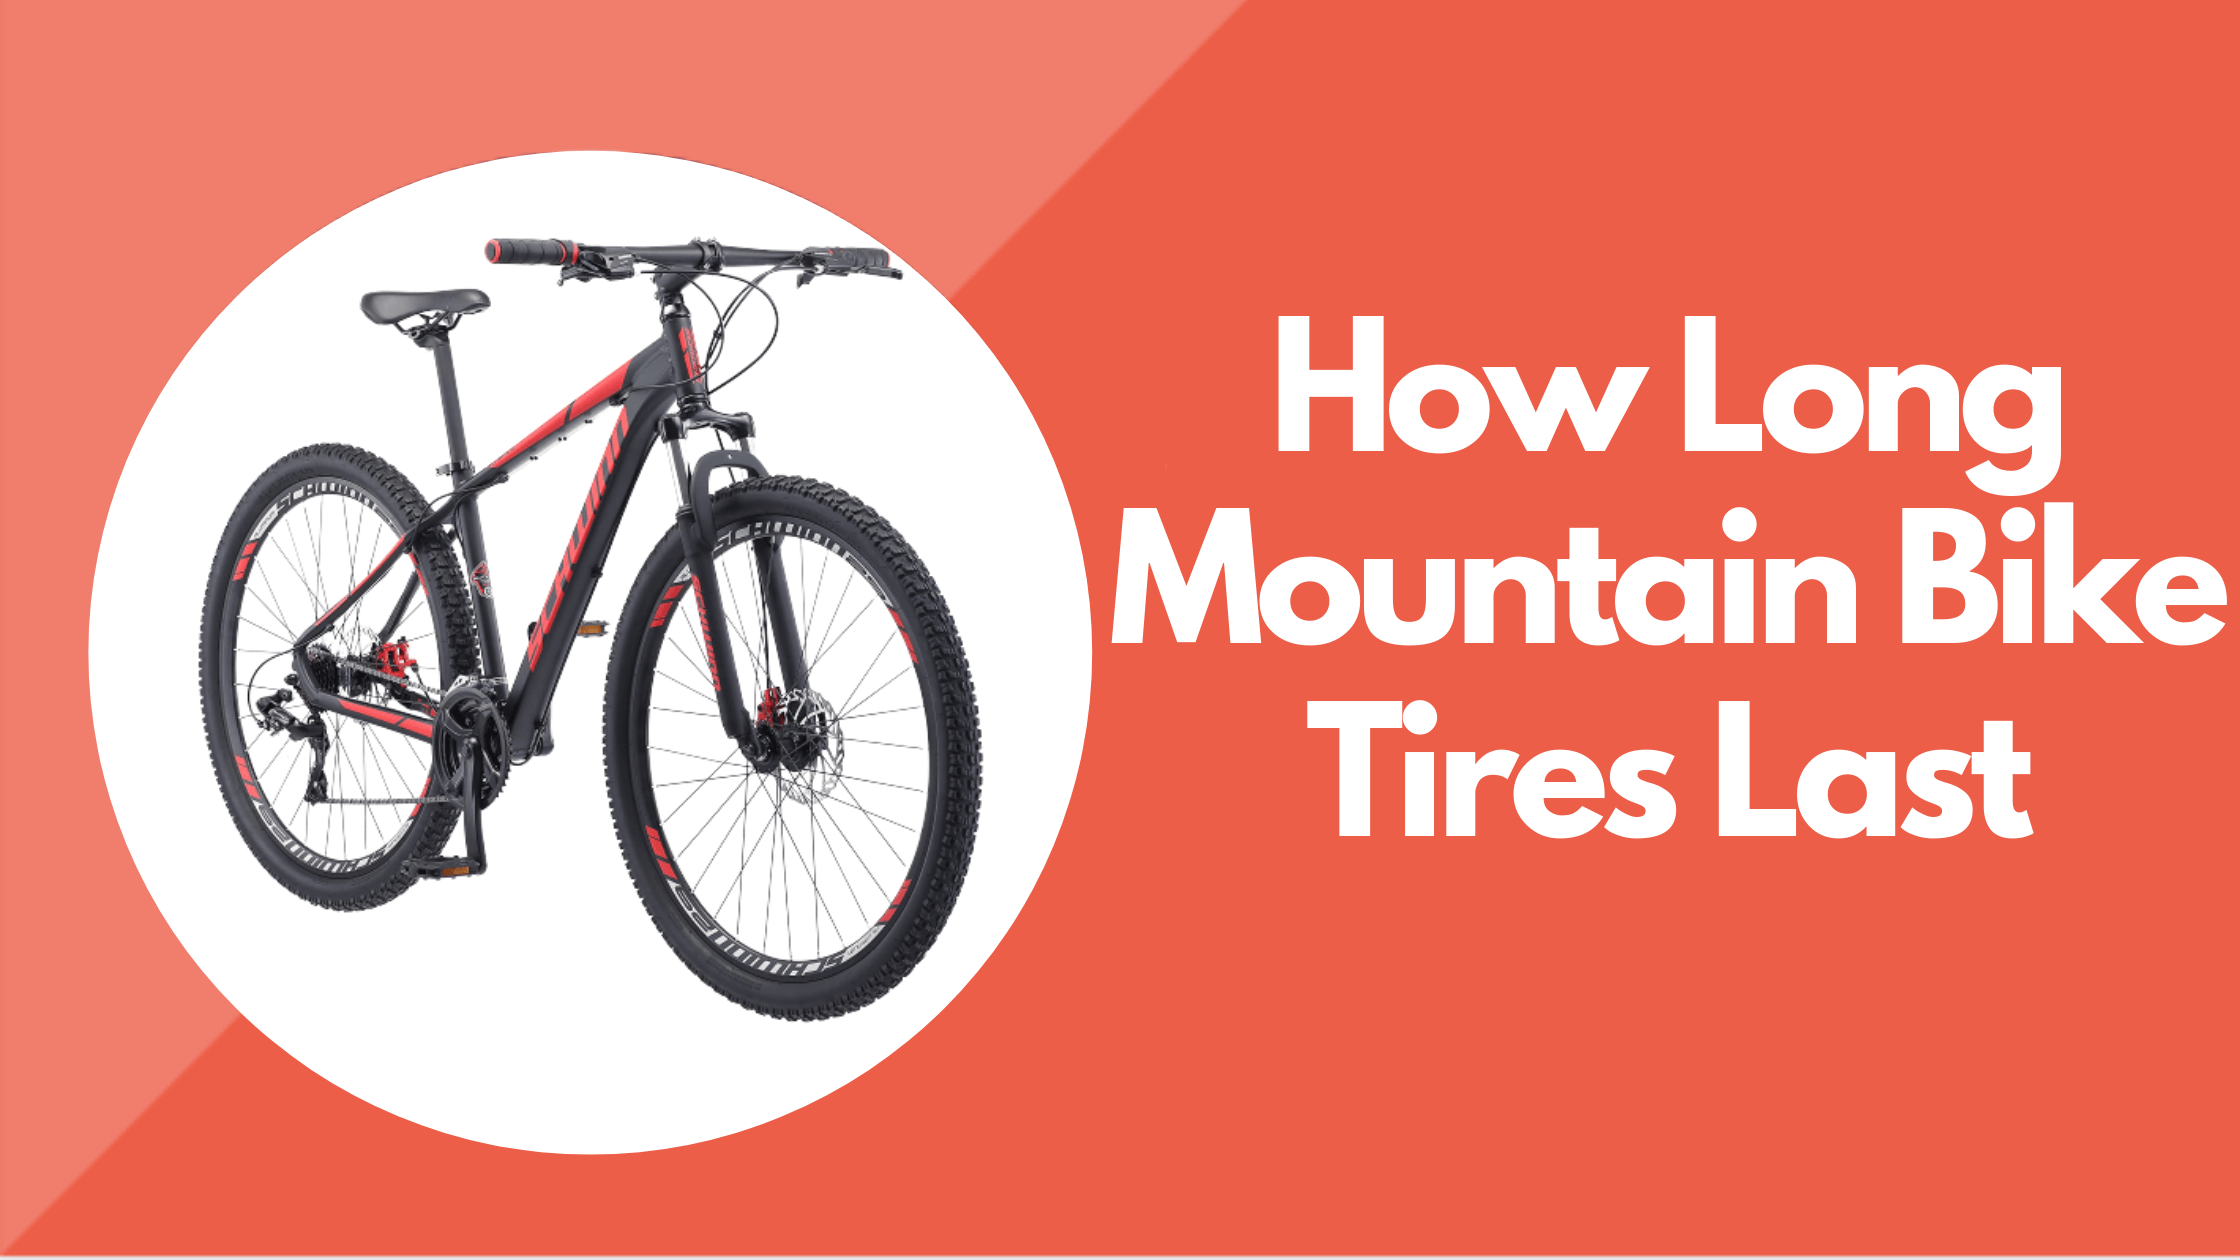 How Long Mountain Bike Tires Last